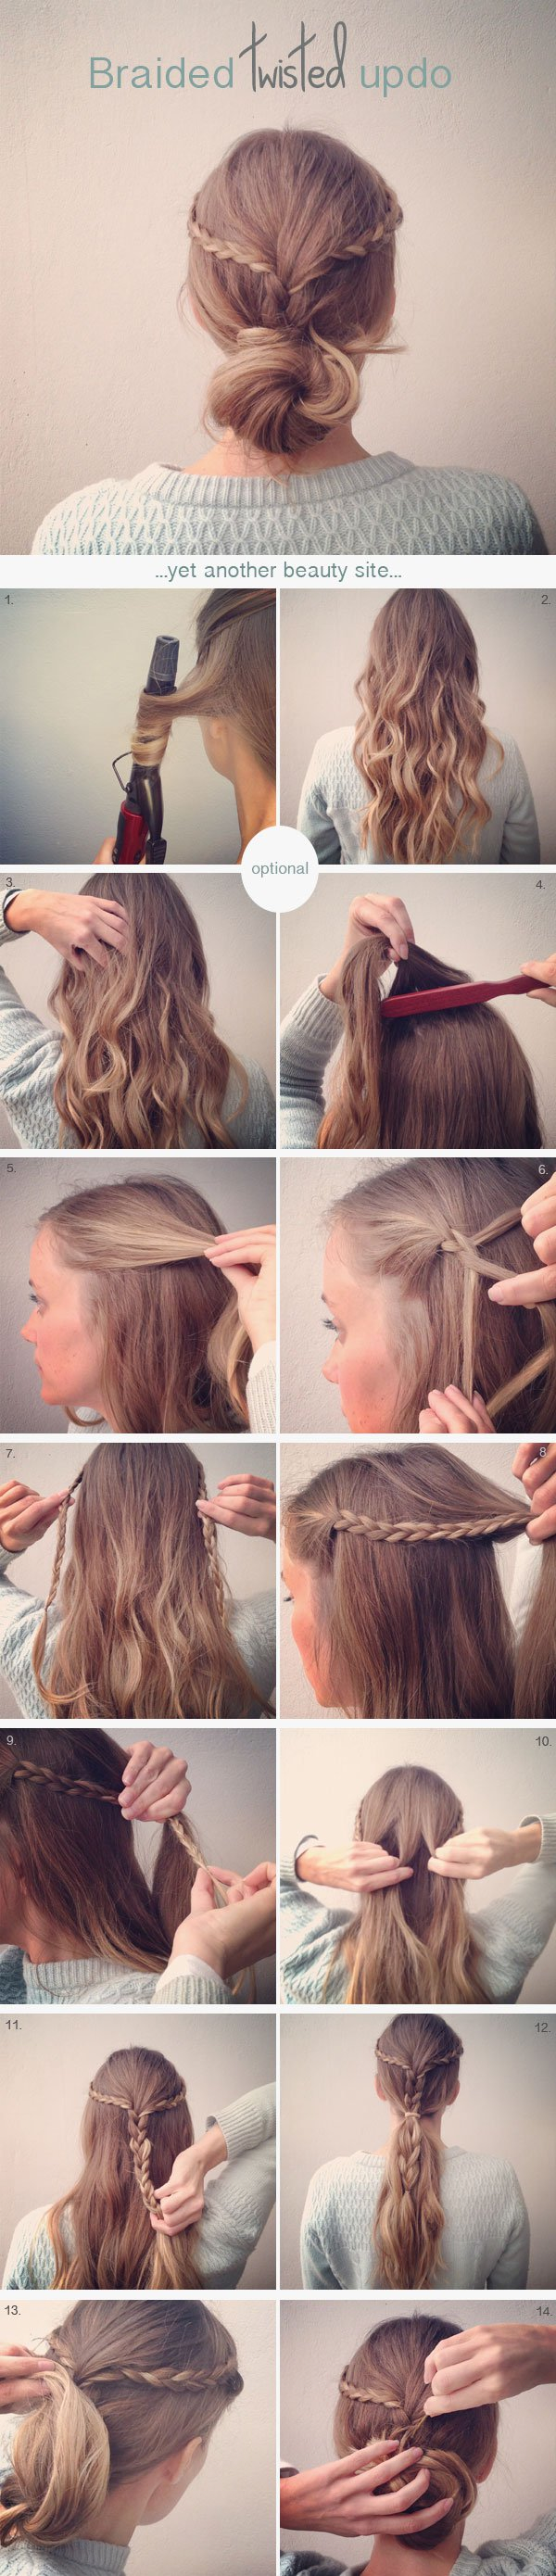 Loosely twisted updo with braid